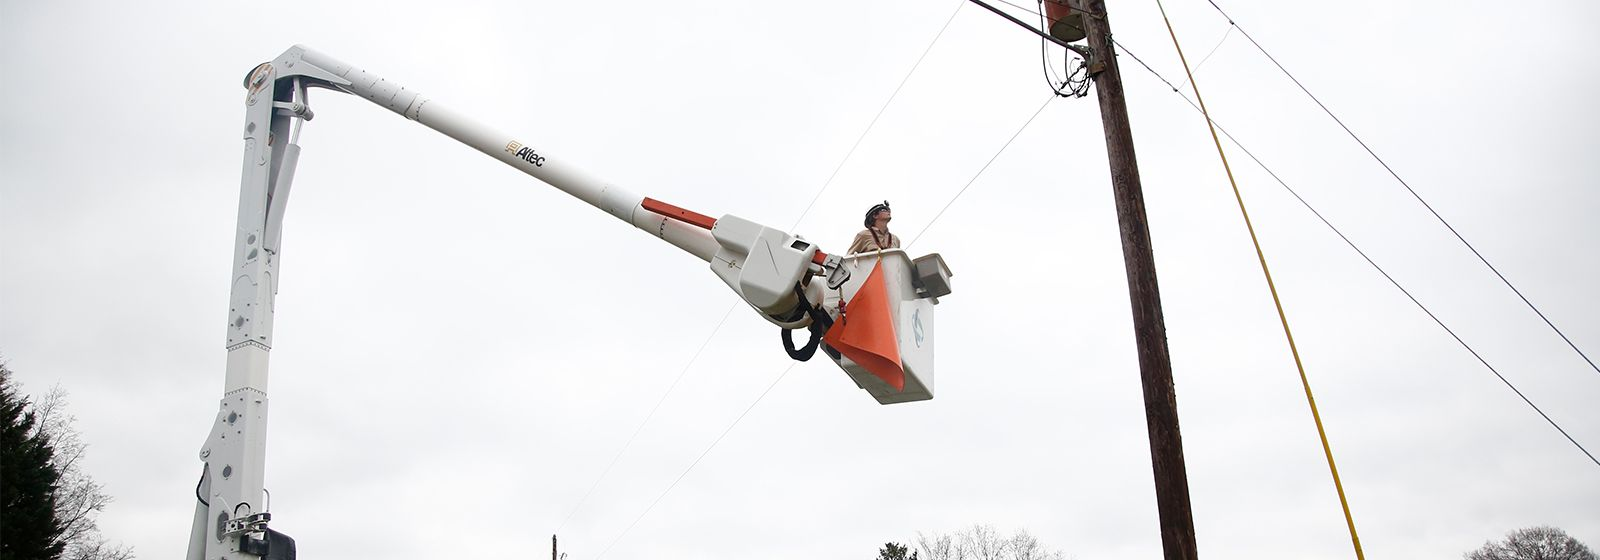 Typical day for a lineworker? There isn't one